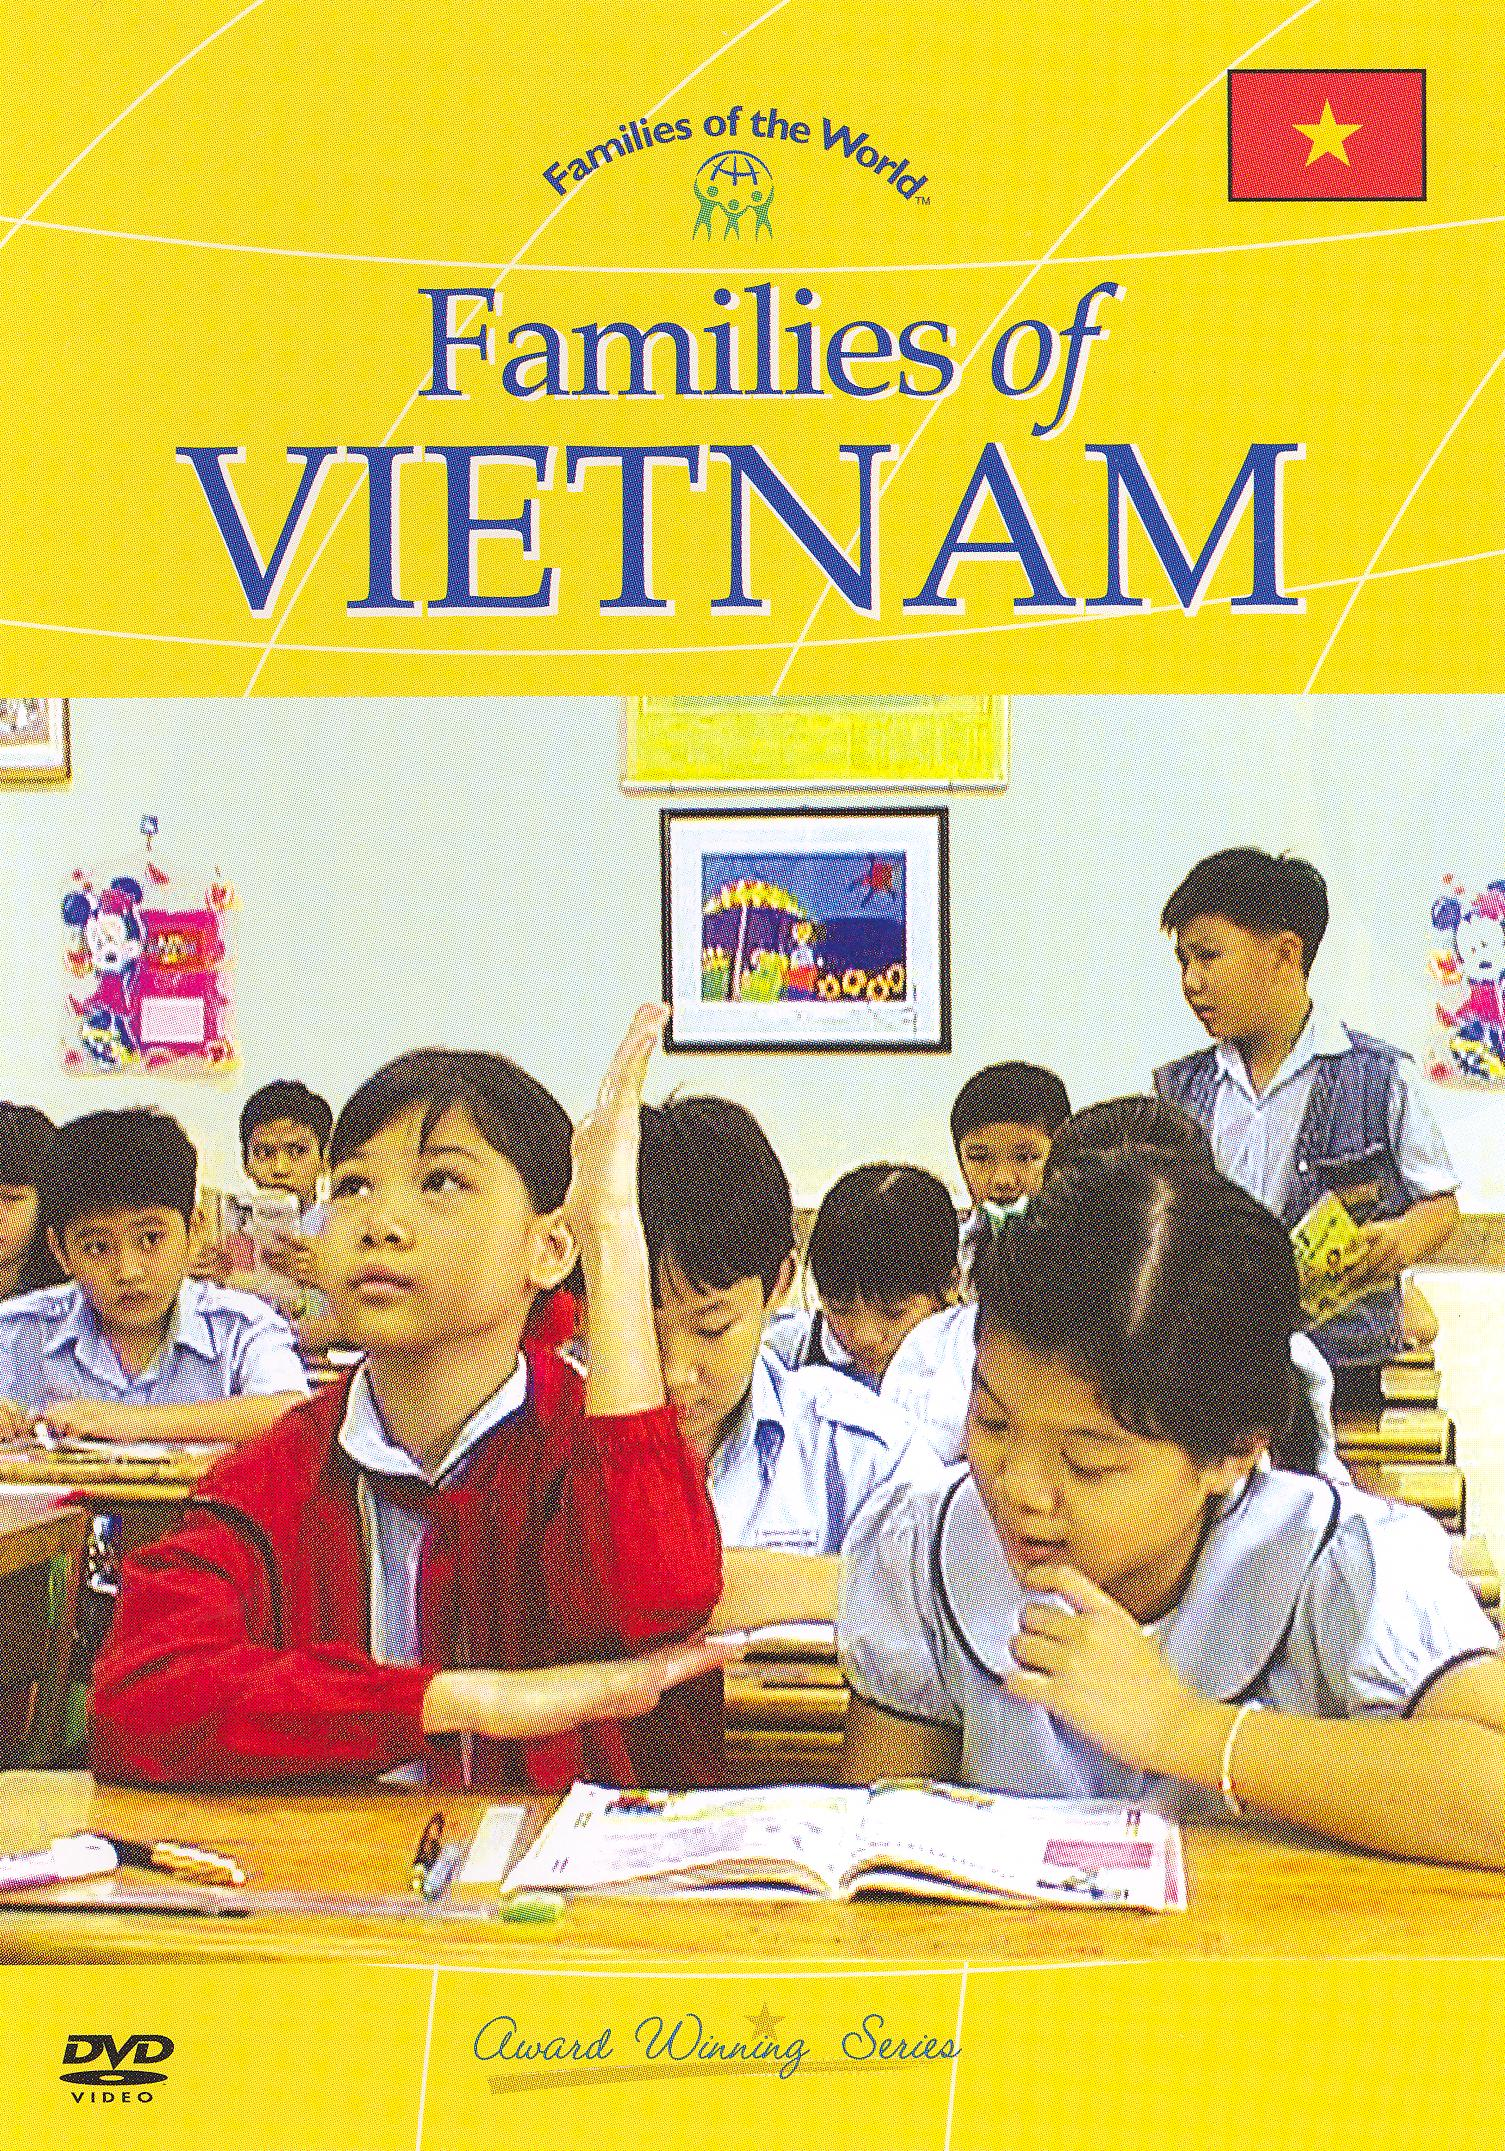 Families of the World: Families of Vietnam